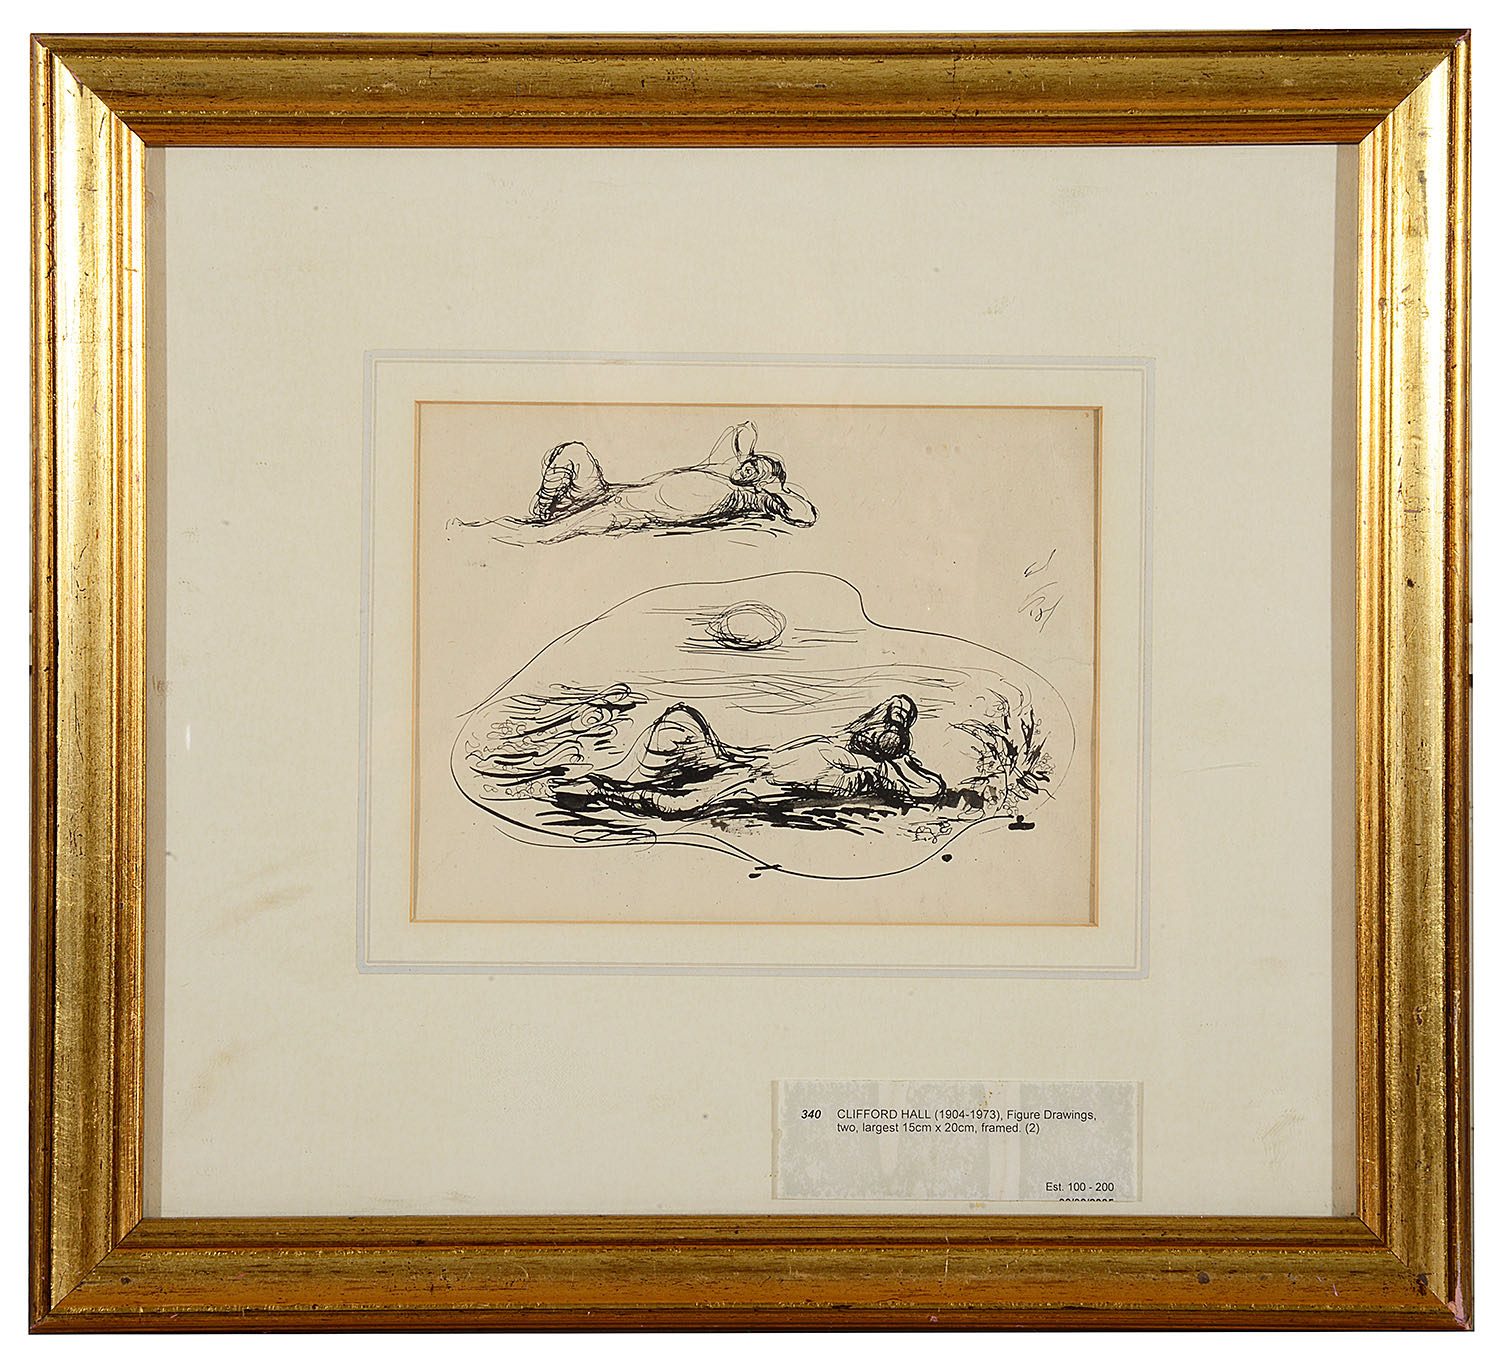 Lot 38 - THIS LOT IS WITHDRAWN